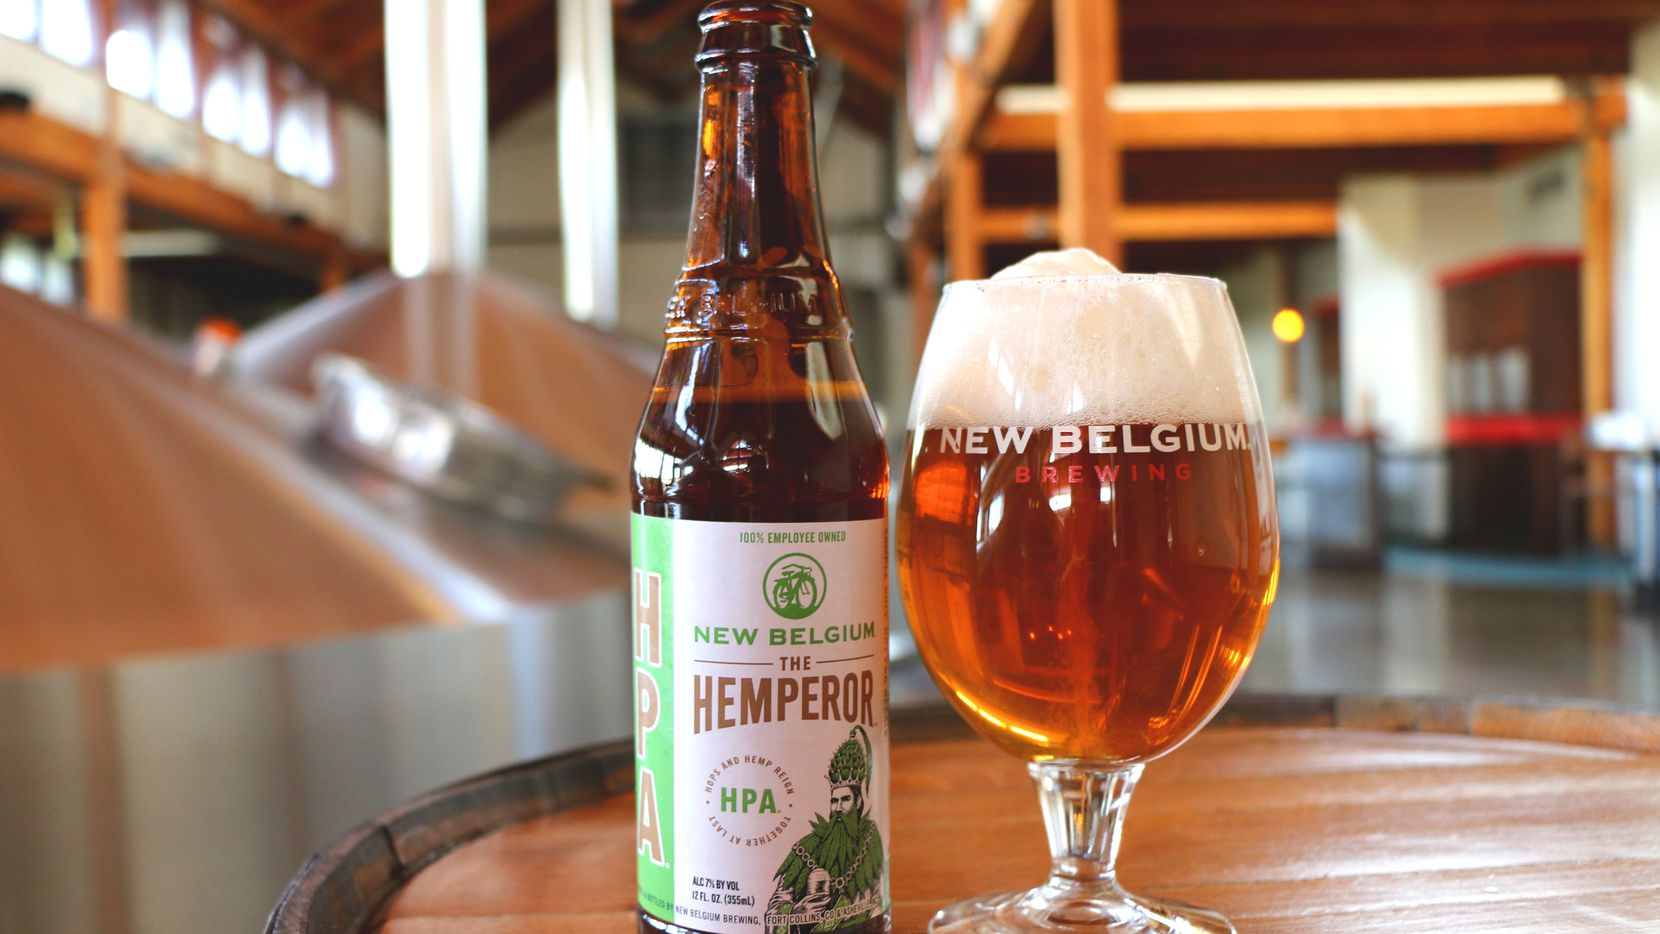 """The Hemperor is a """"hemp pale ale"""" from New Belgium Brewing Co. in Colorado and one of the first nationally distributed beers using a cannabis product. The beer is made with hemp seeds."""